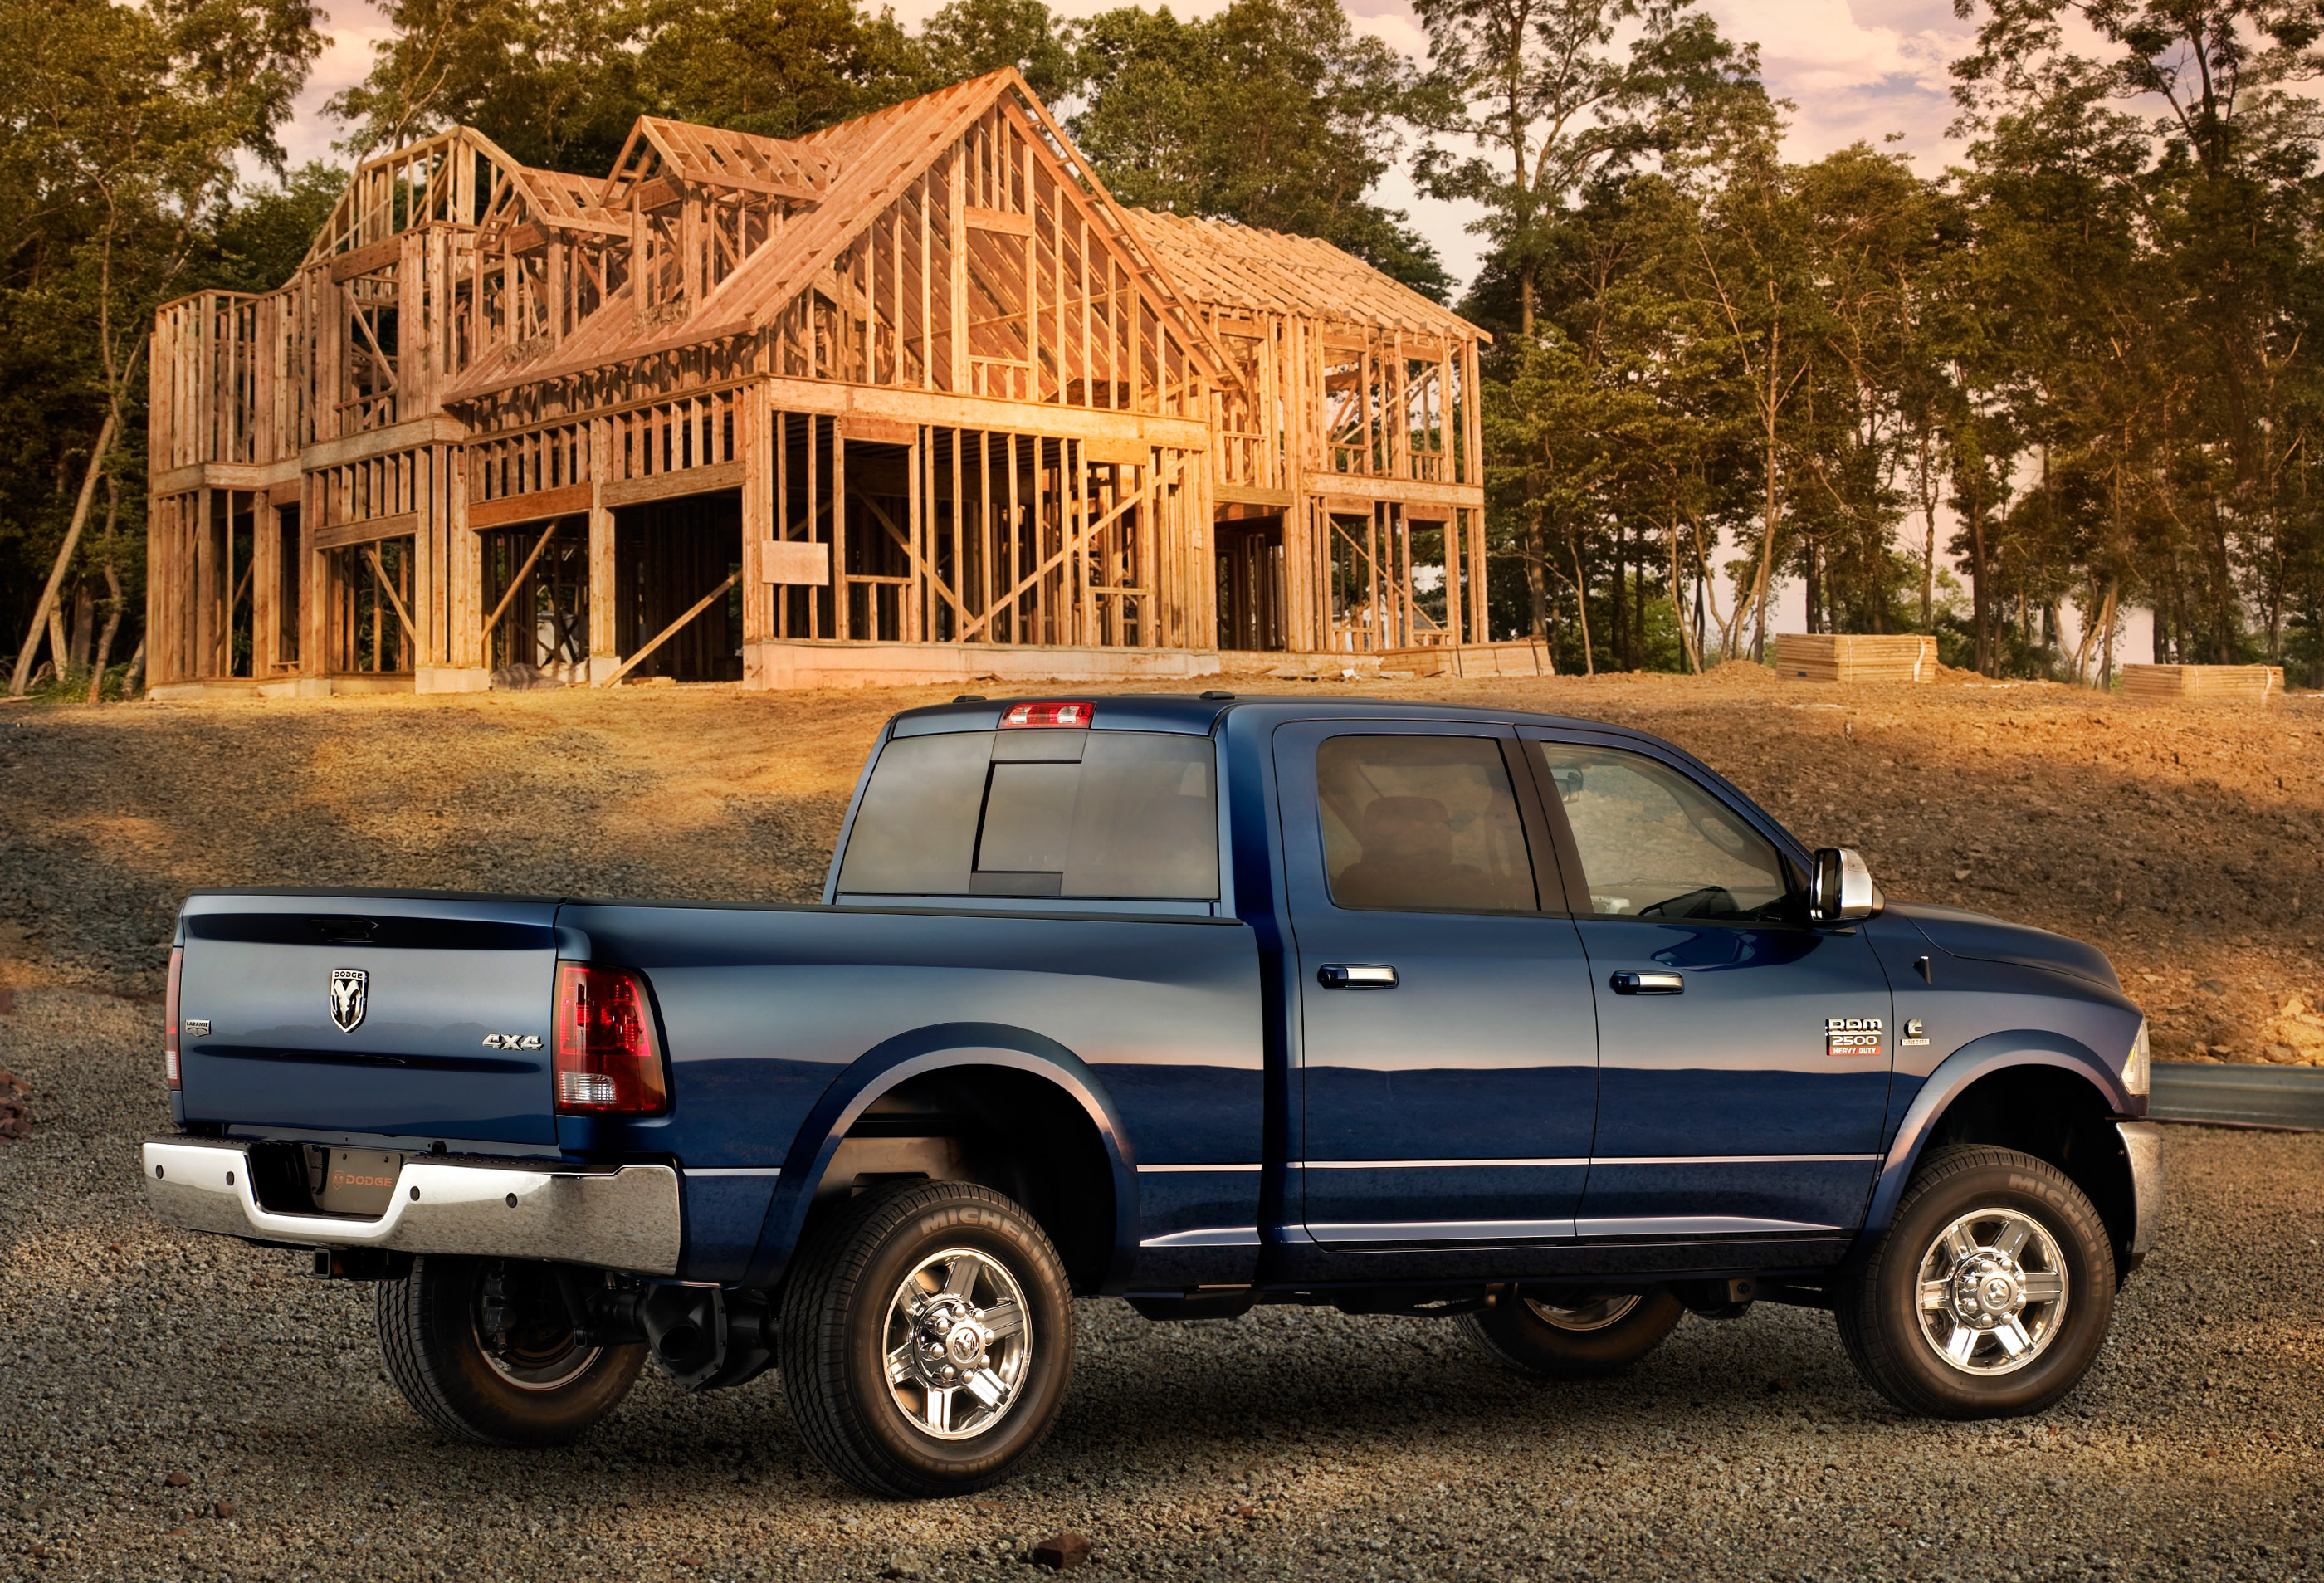 2010 Dodge Ram 2500 and 3500 will be the Ultimate Heavy-Duty Pickup Trucks